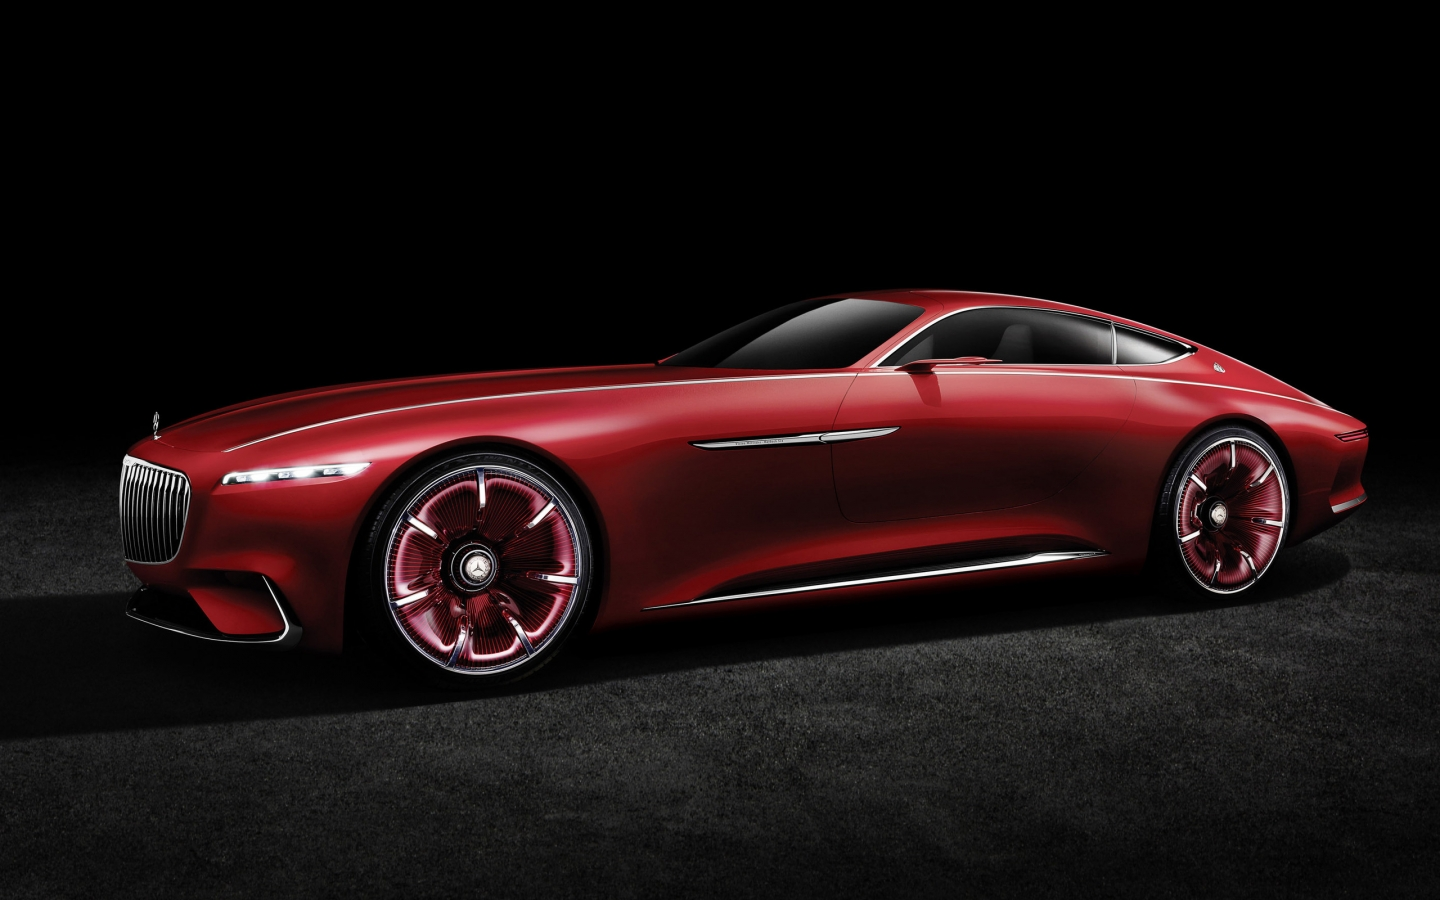 2016 Vision Mercedes Maybach 6 Side View for 1440 x 900 widescreen resolution